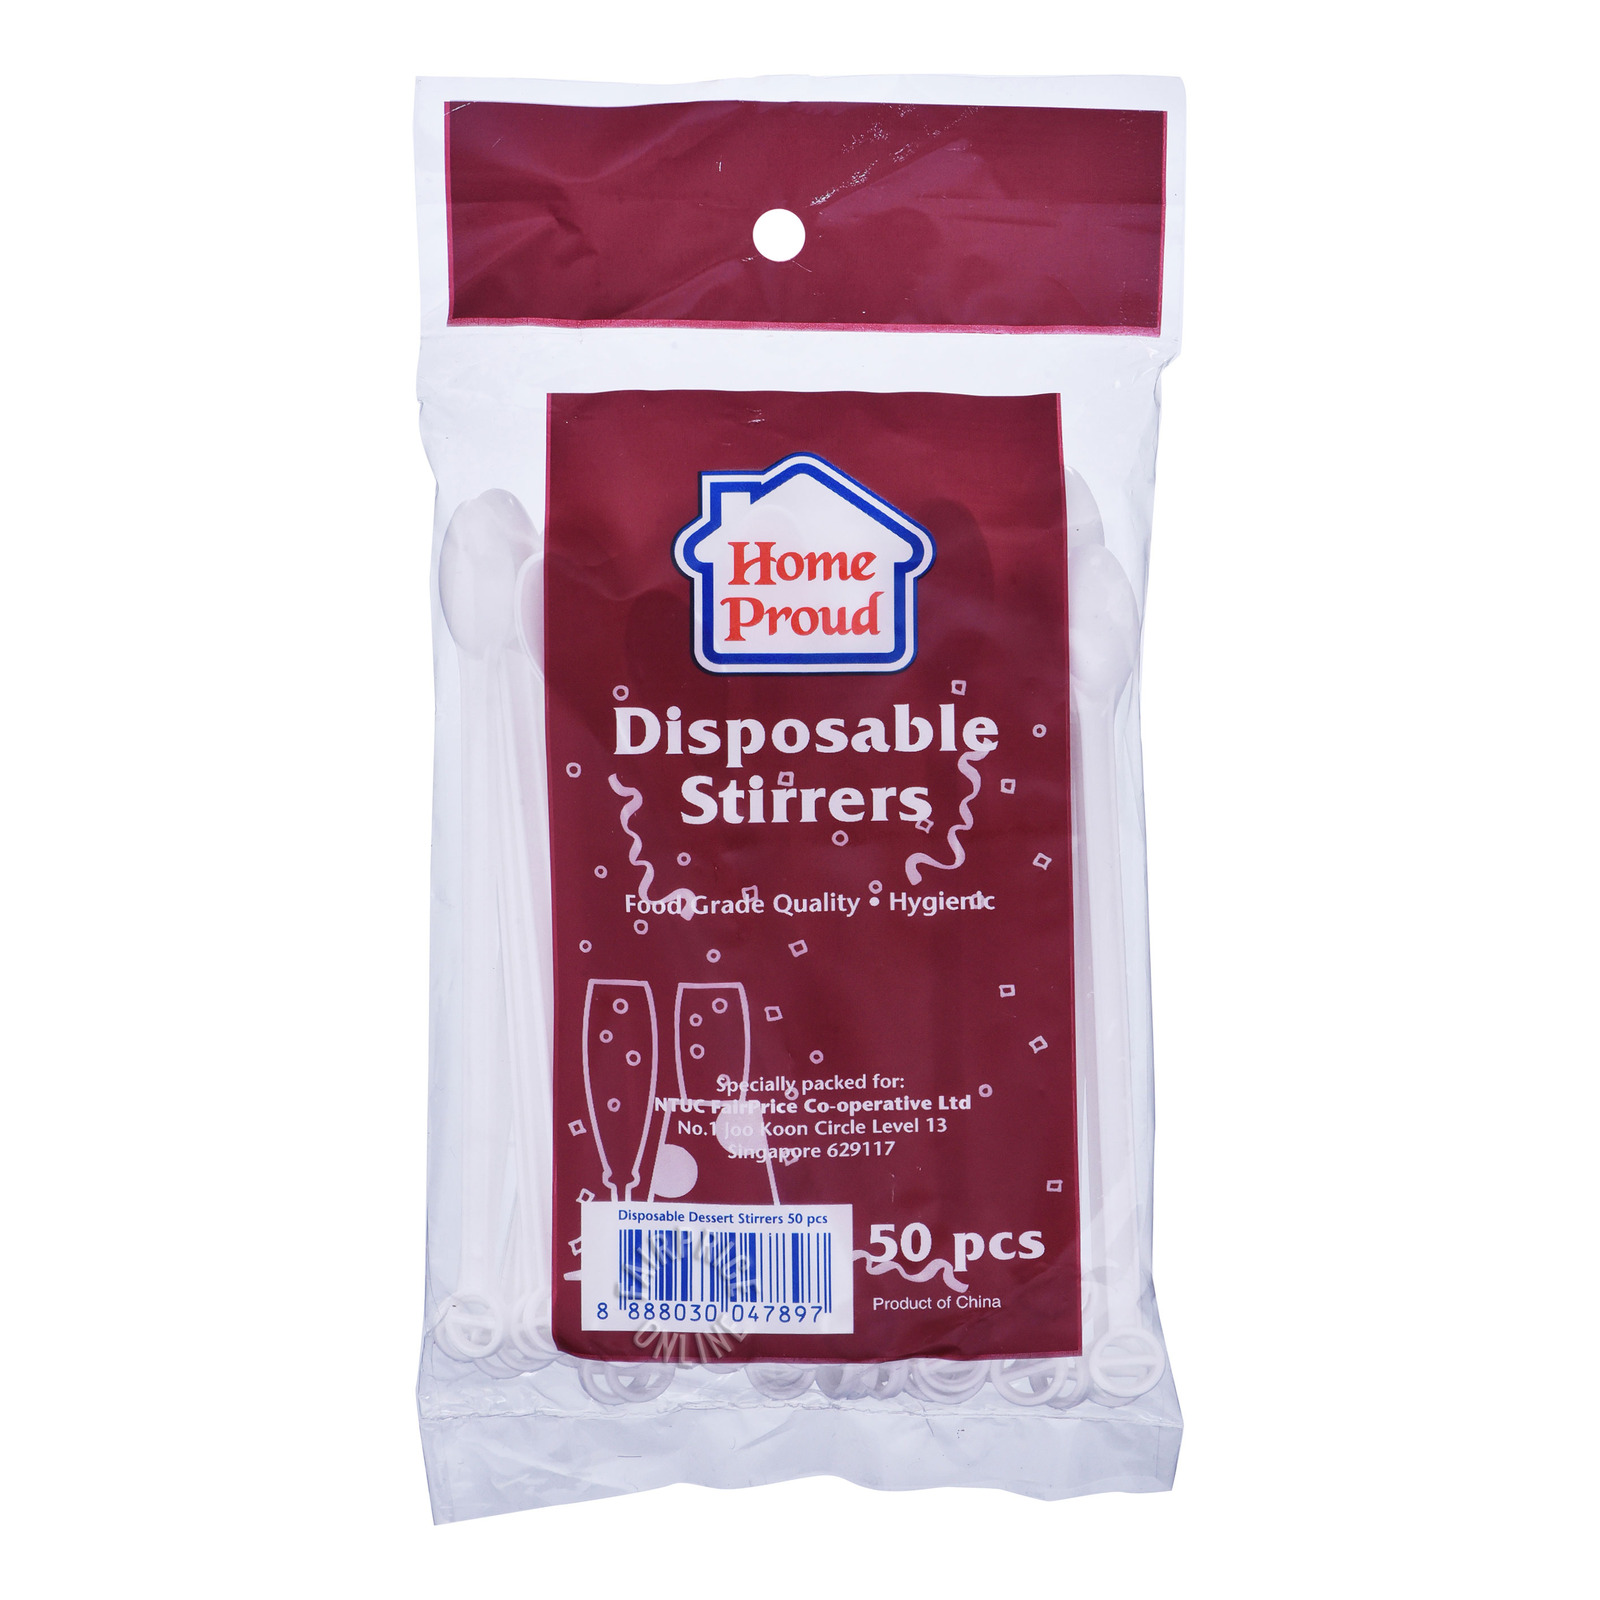 HomeProud Disposable Stirrers